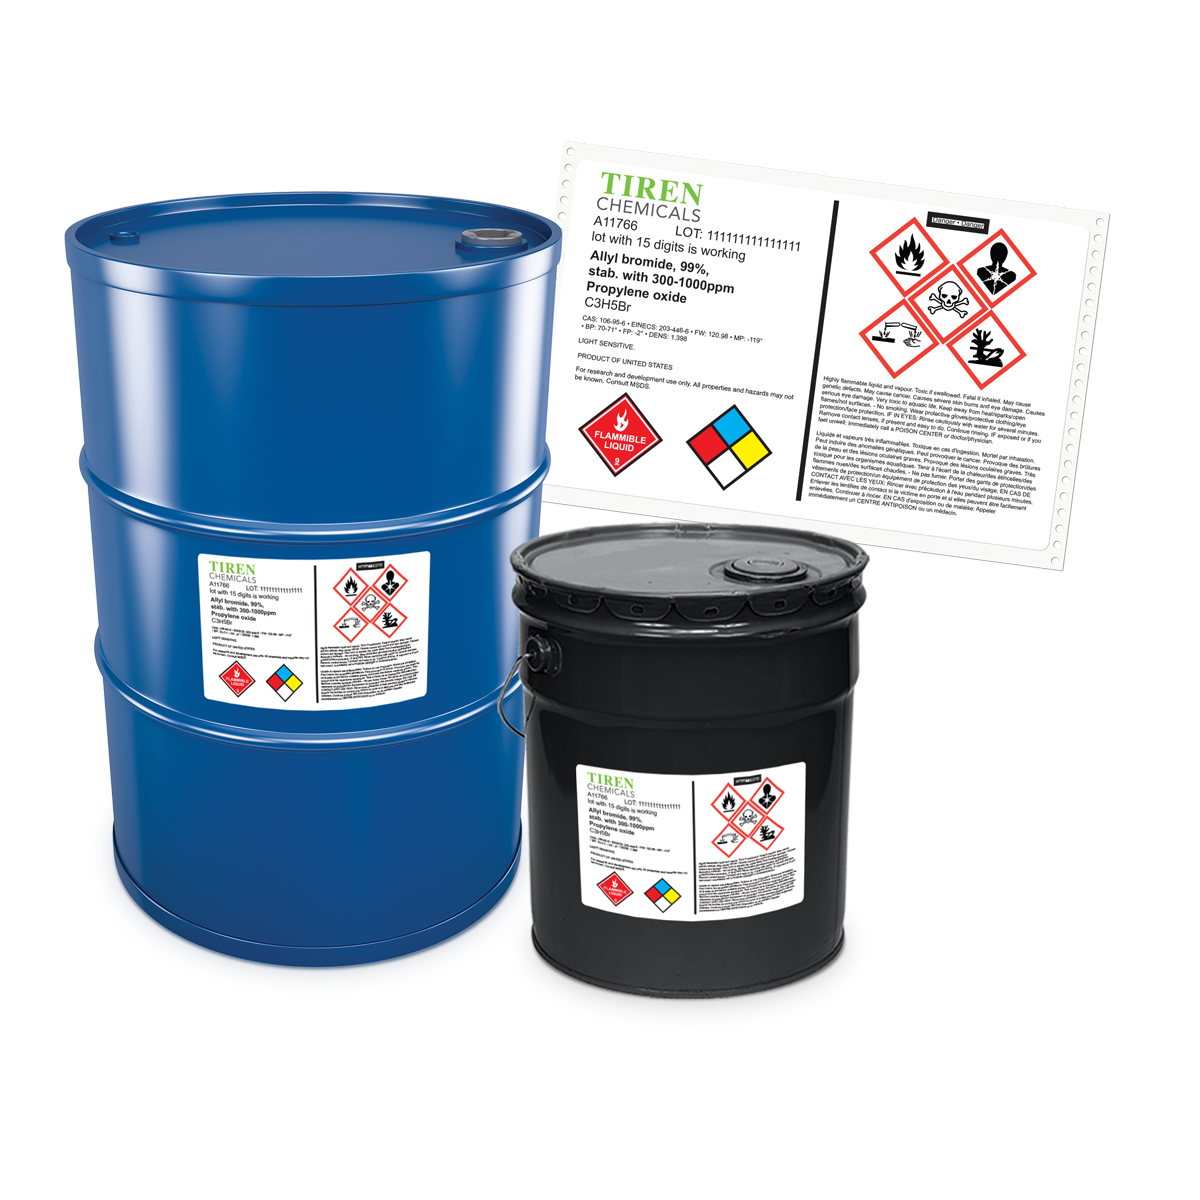 Labels for Chemicals